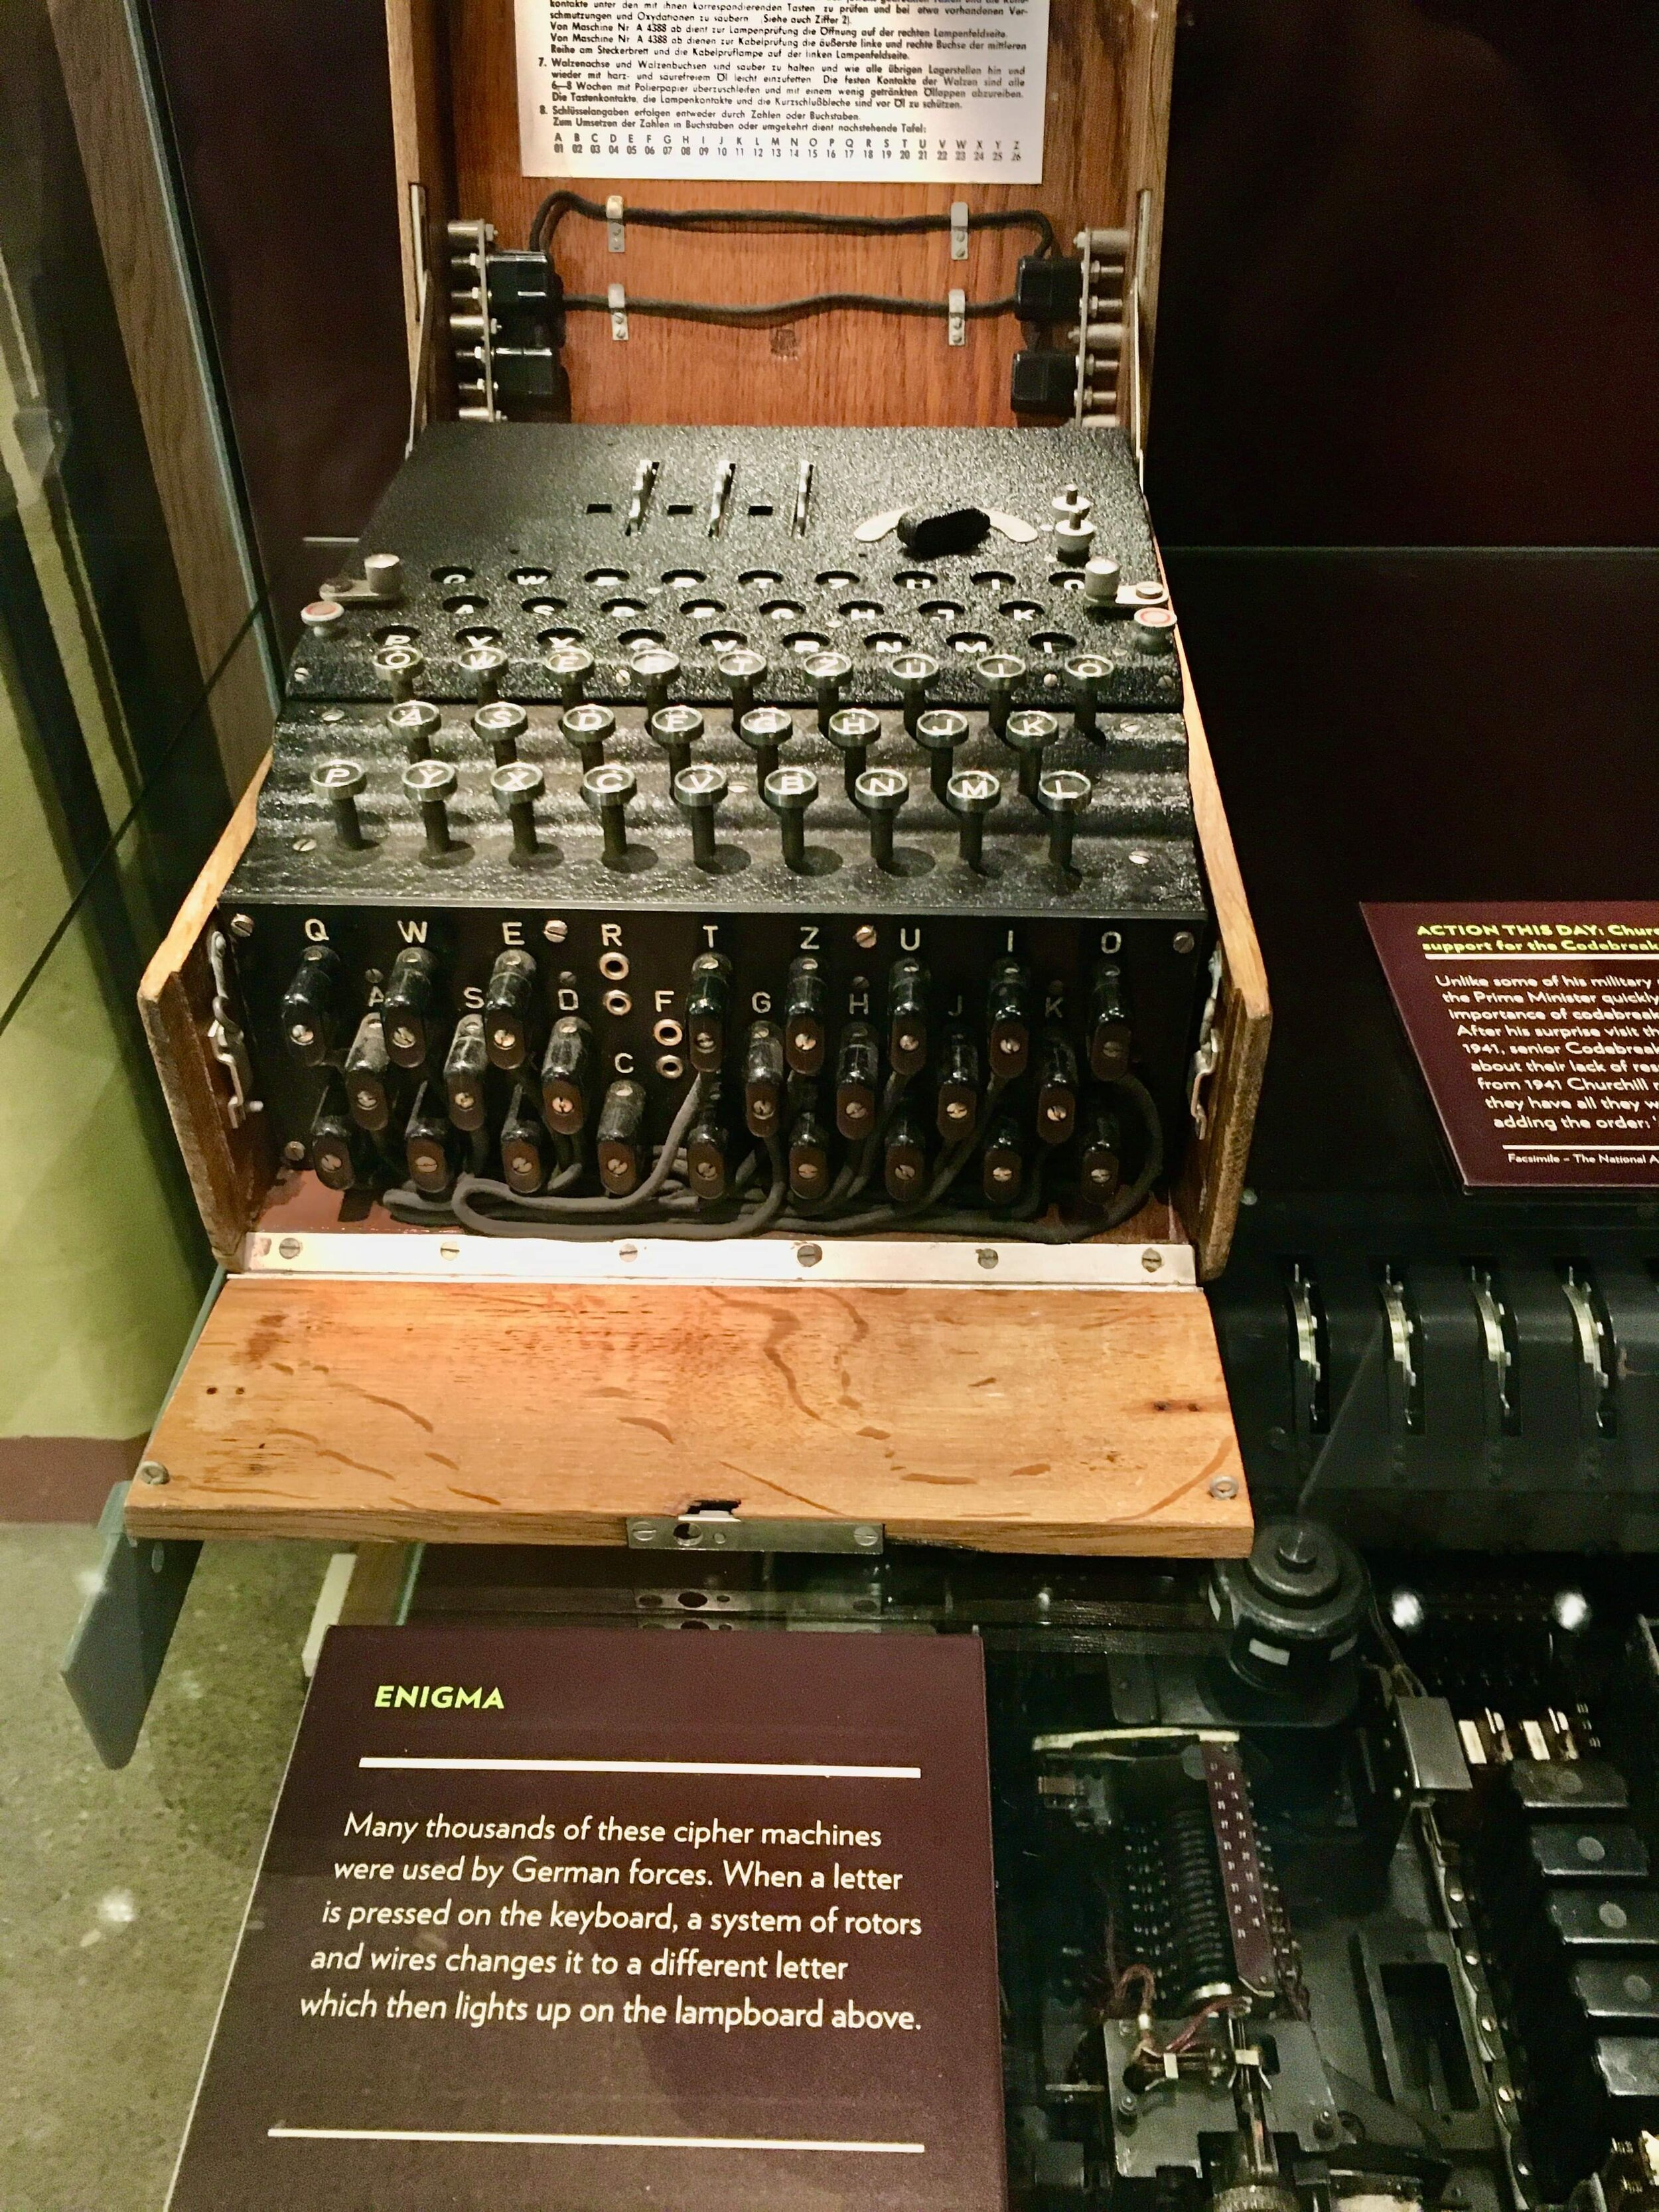 The German code machine known as Enigma